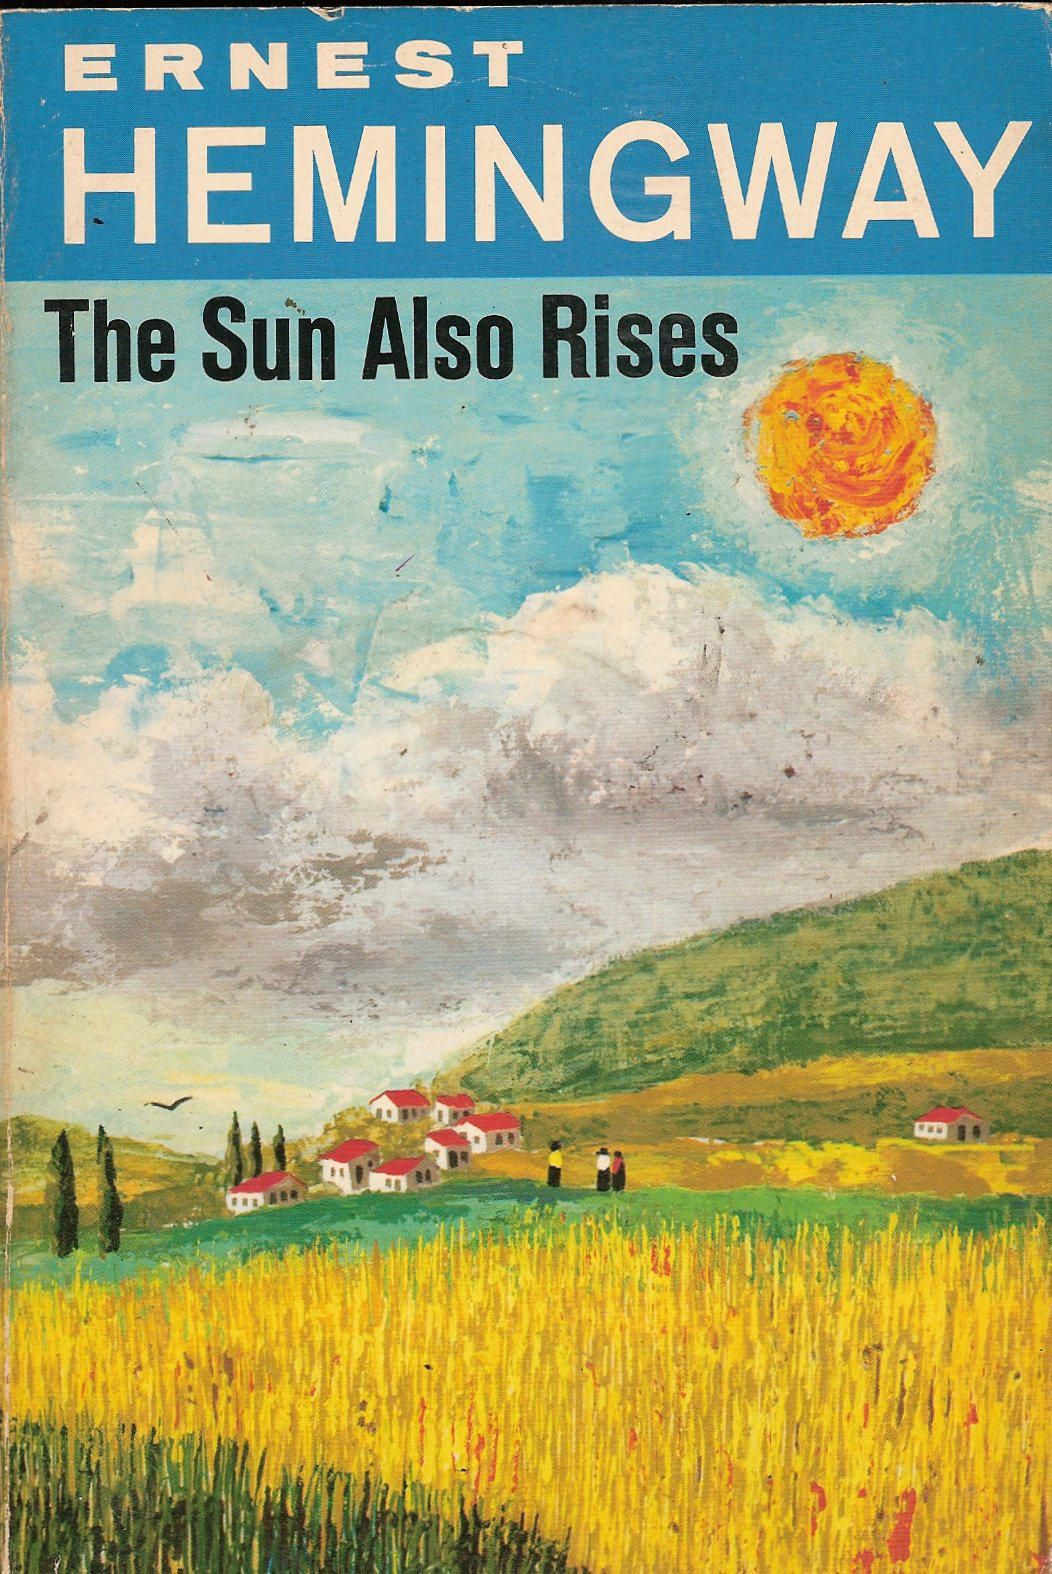 an analysis of the title of the sun also rises by ernest hemingway Jake barnes is not merely the narrator (storyteller) of the sun also rises he is also its protagonist, or main character that means that the novel is driven by his needs and desires more than those of the other characters.